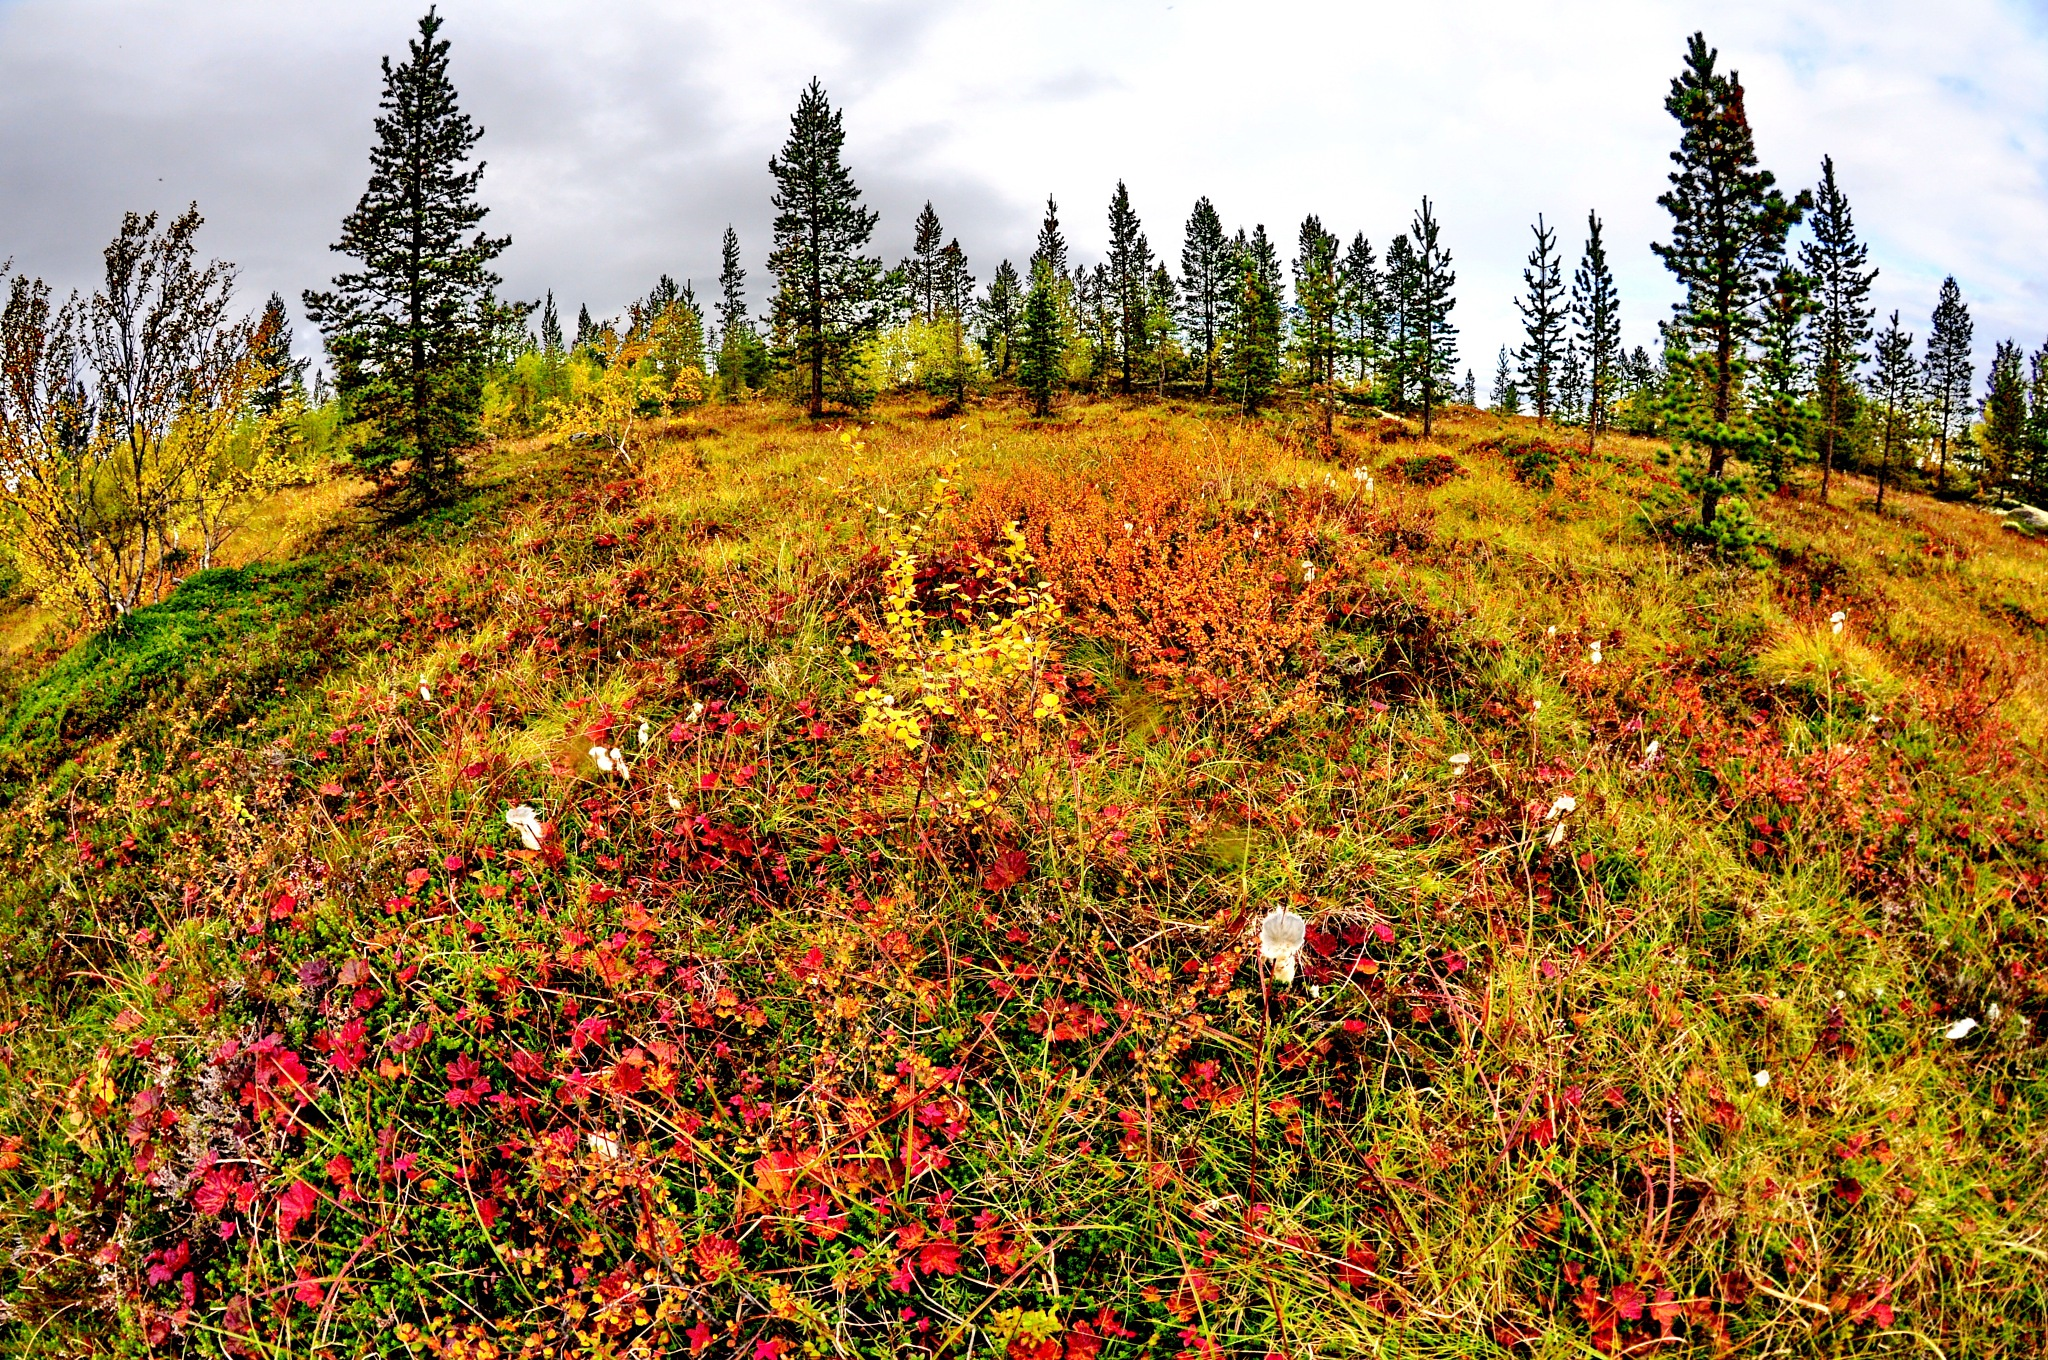 Murmansk, the autumn by vadsever58